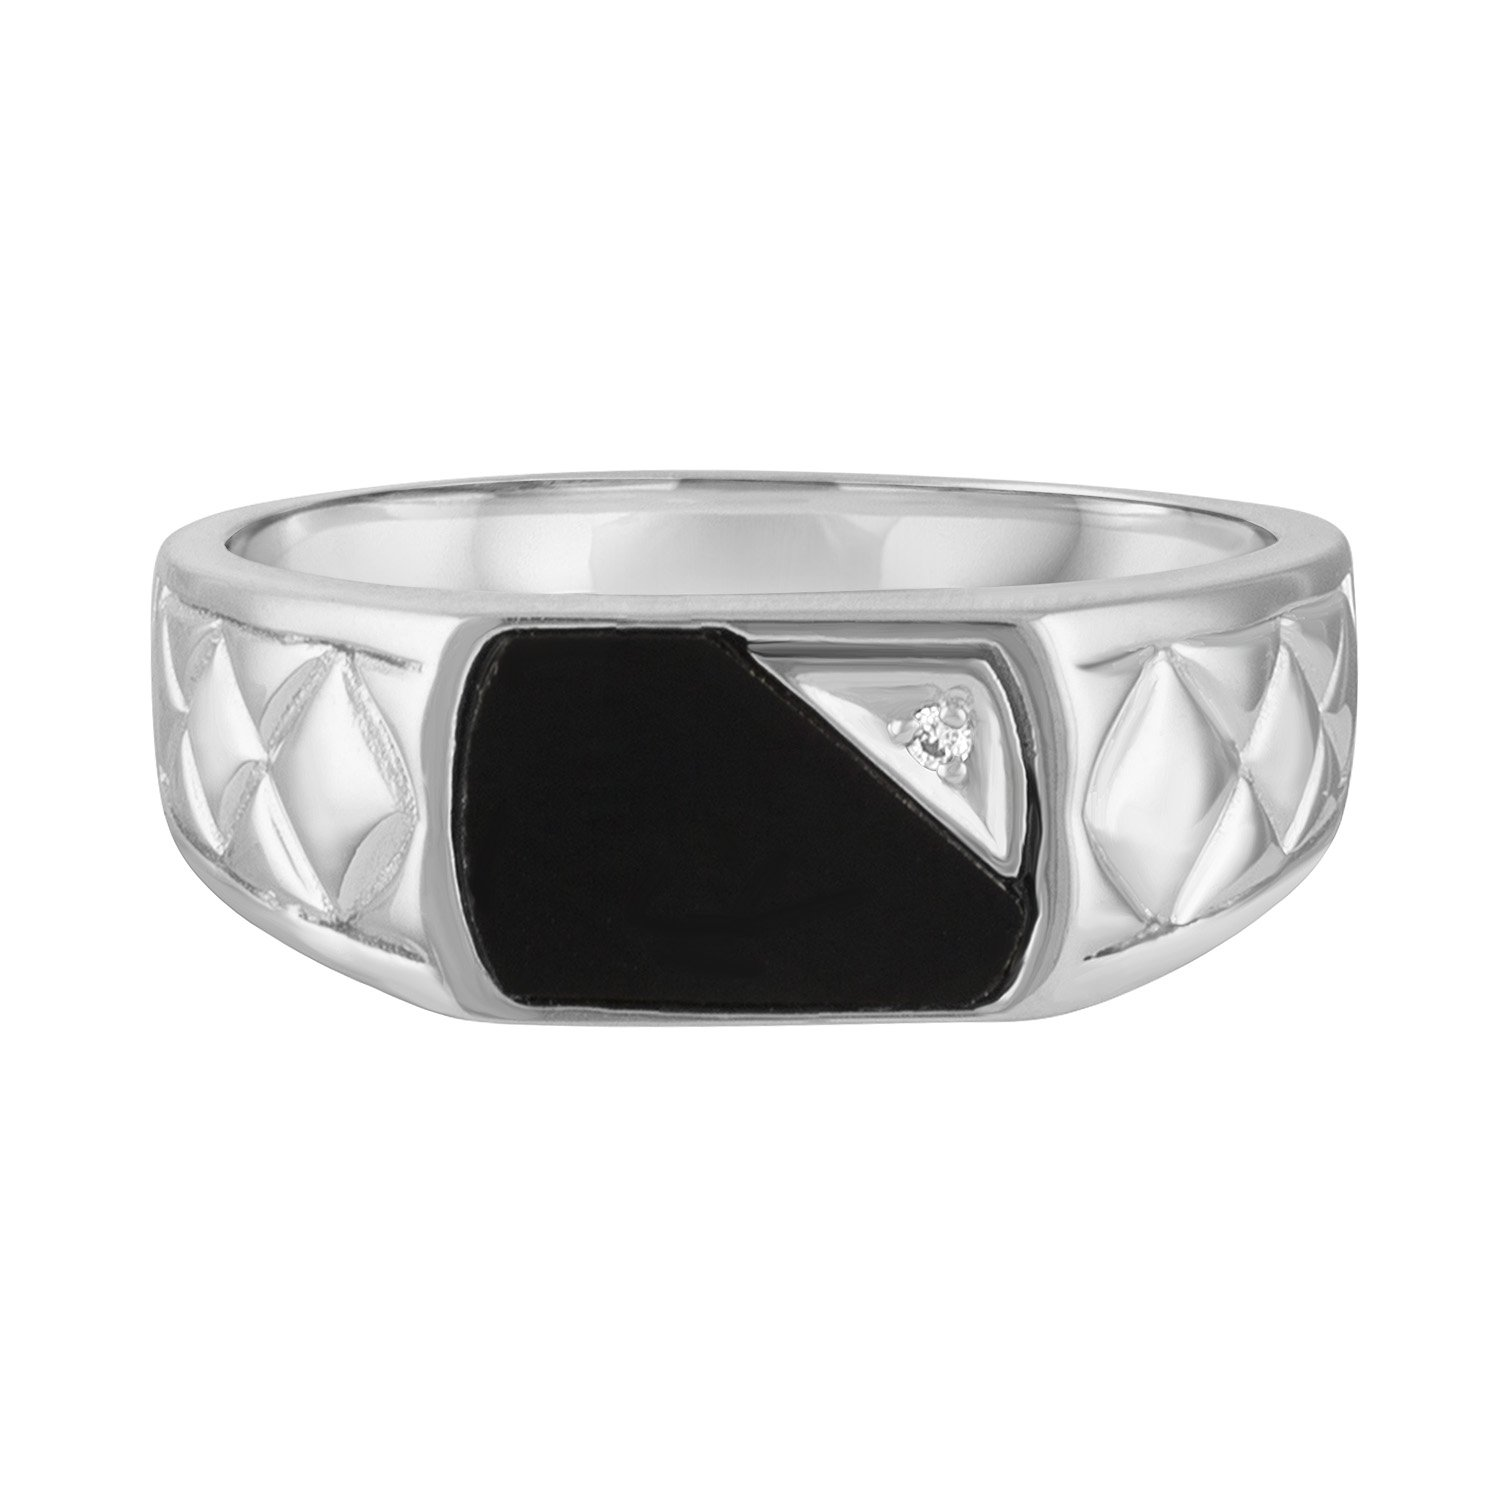 Esty /& Me Mens Black Onyx Ring in Sterling Silver